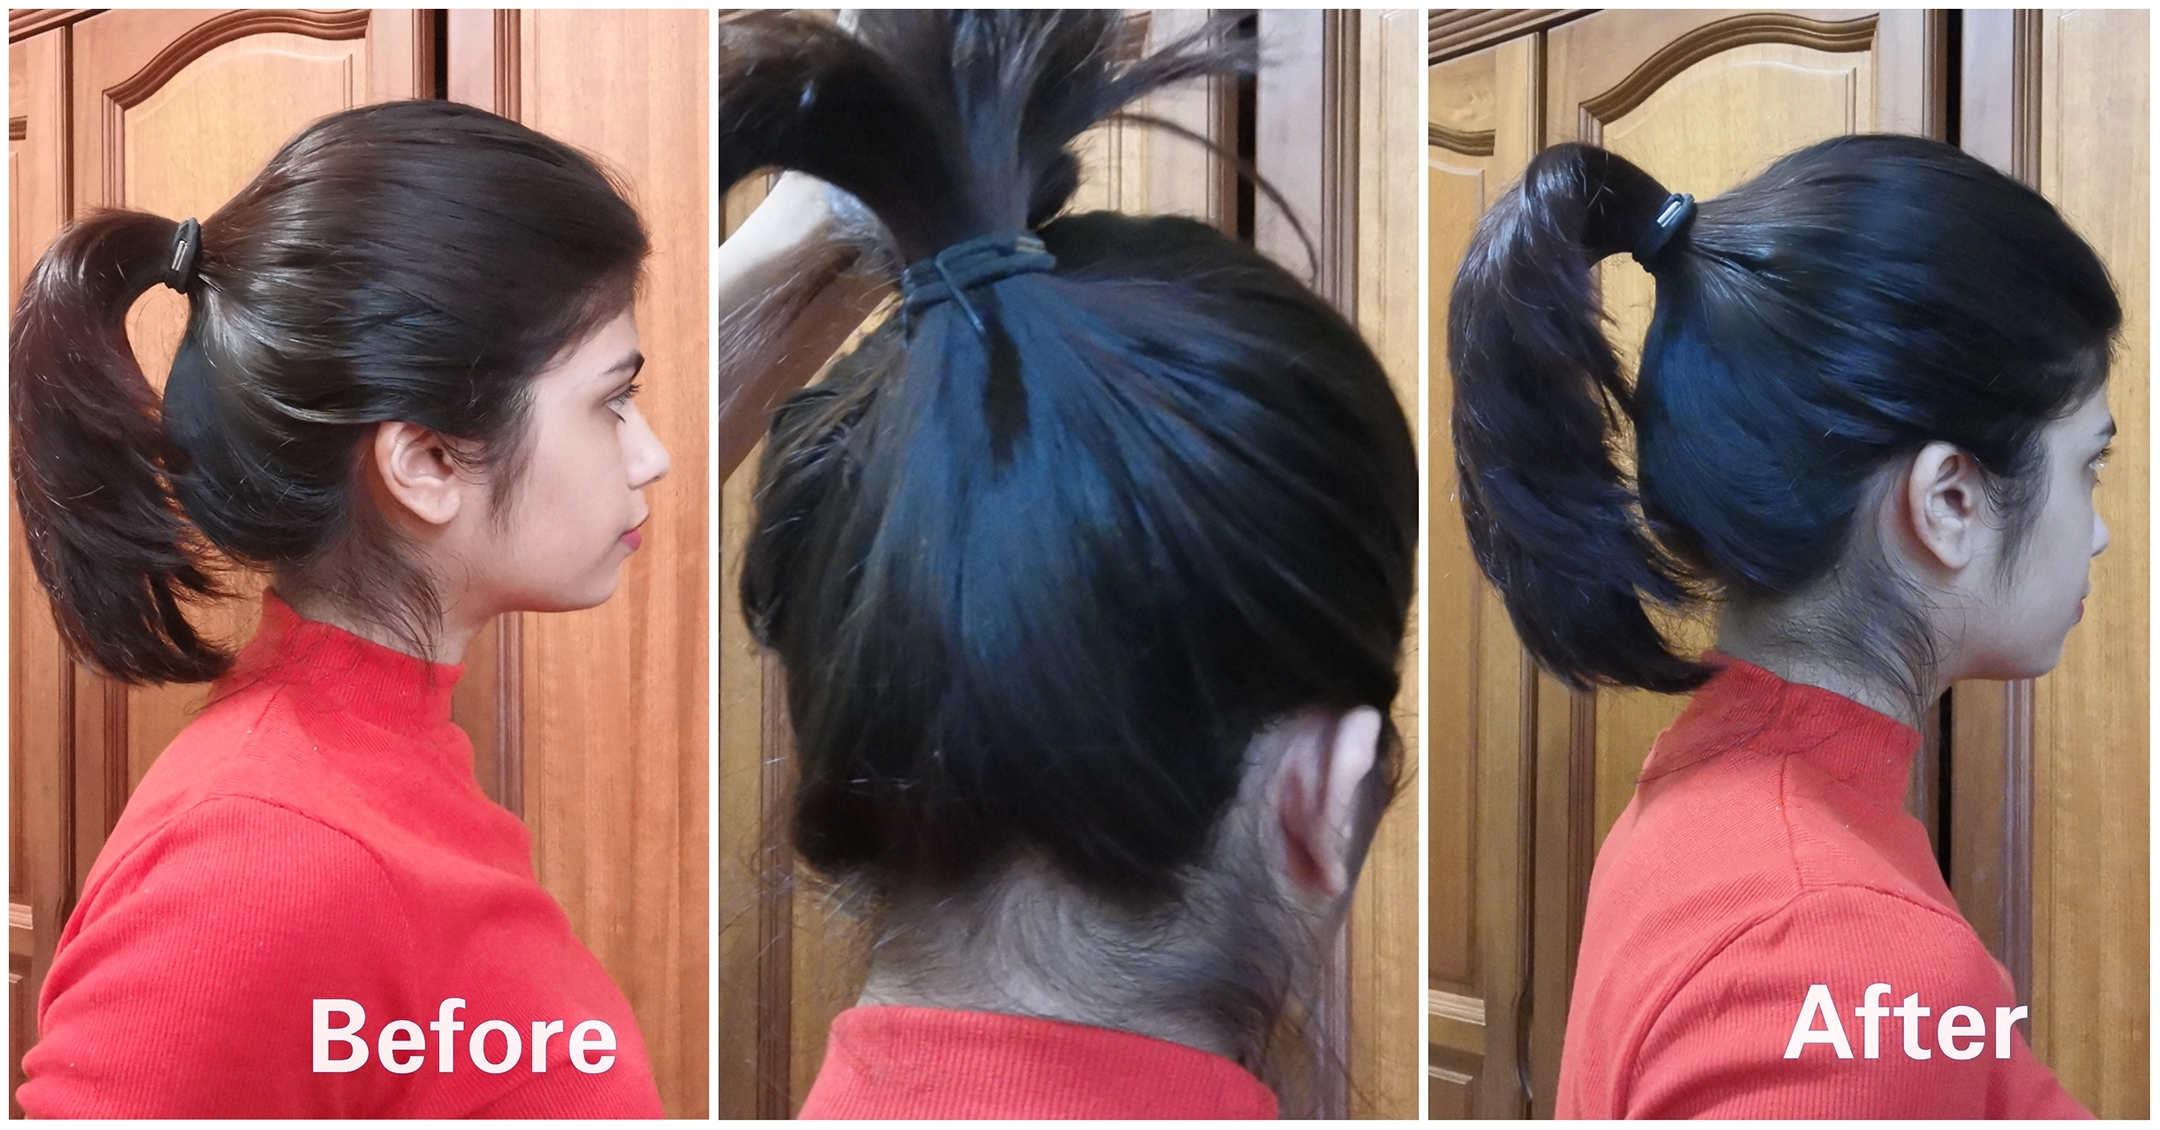 popular hair hacks tested_perky ponytails